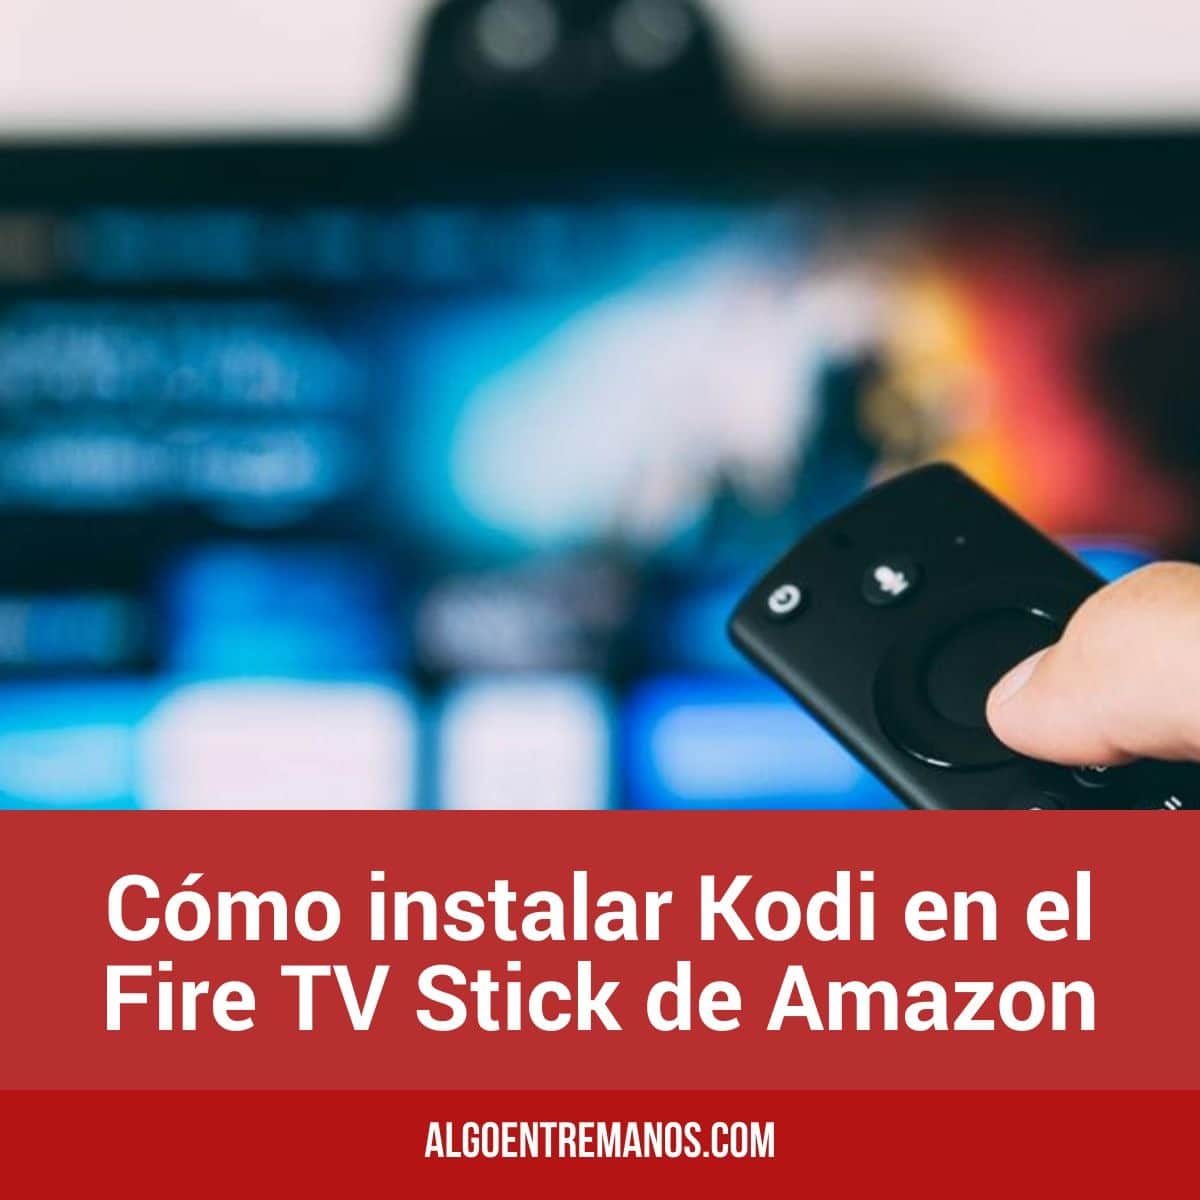 Cómo instalar Kodi en el Fire TV Stick de Amazon